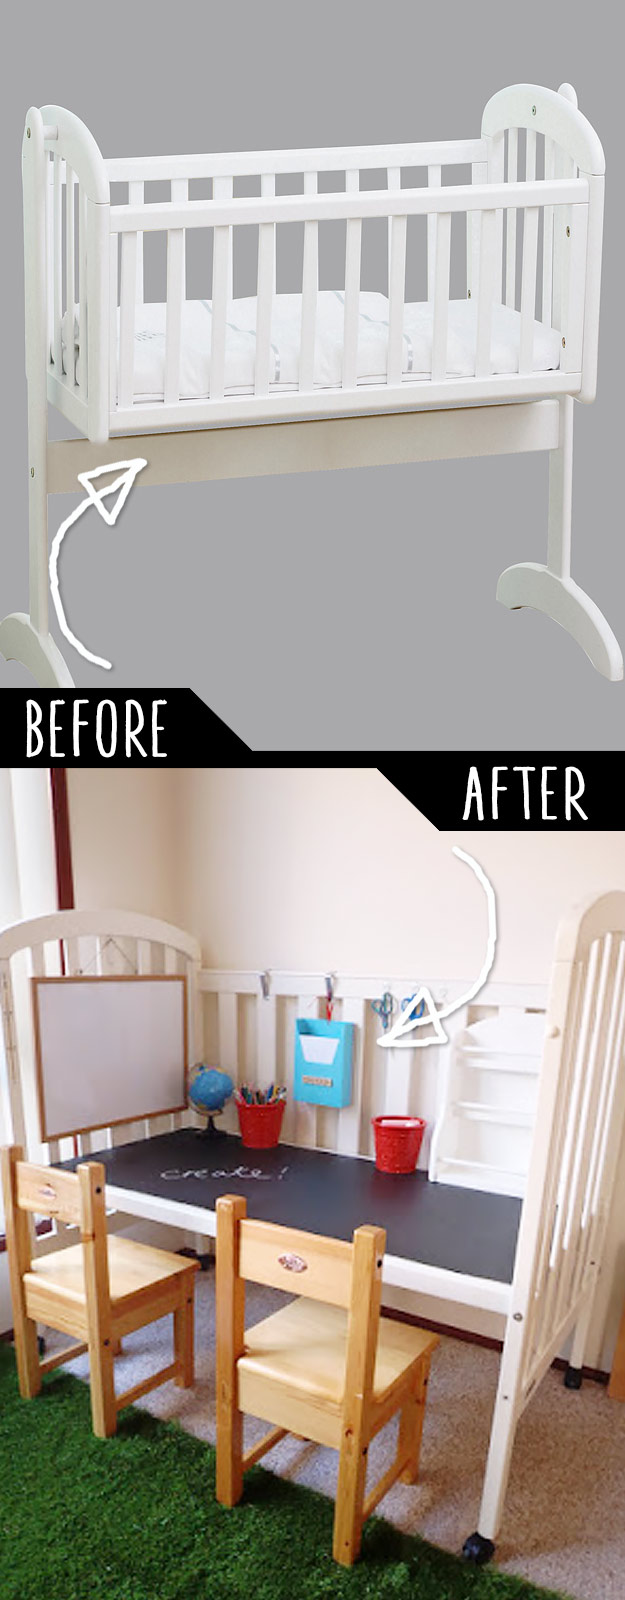 39 Clever Diy Furniture Hacks Creative Ideas